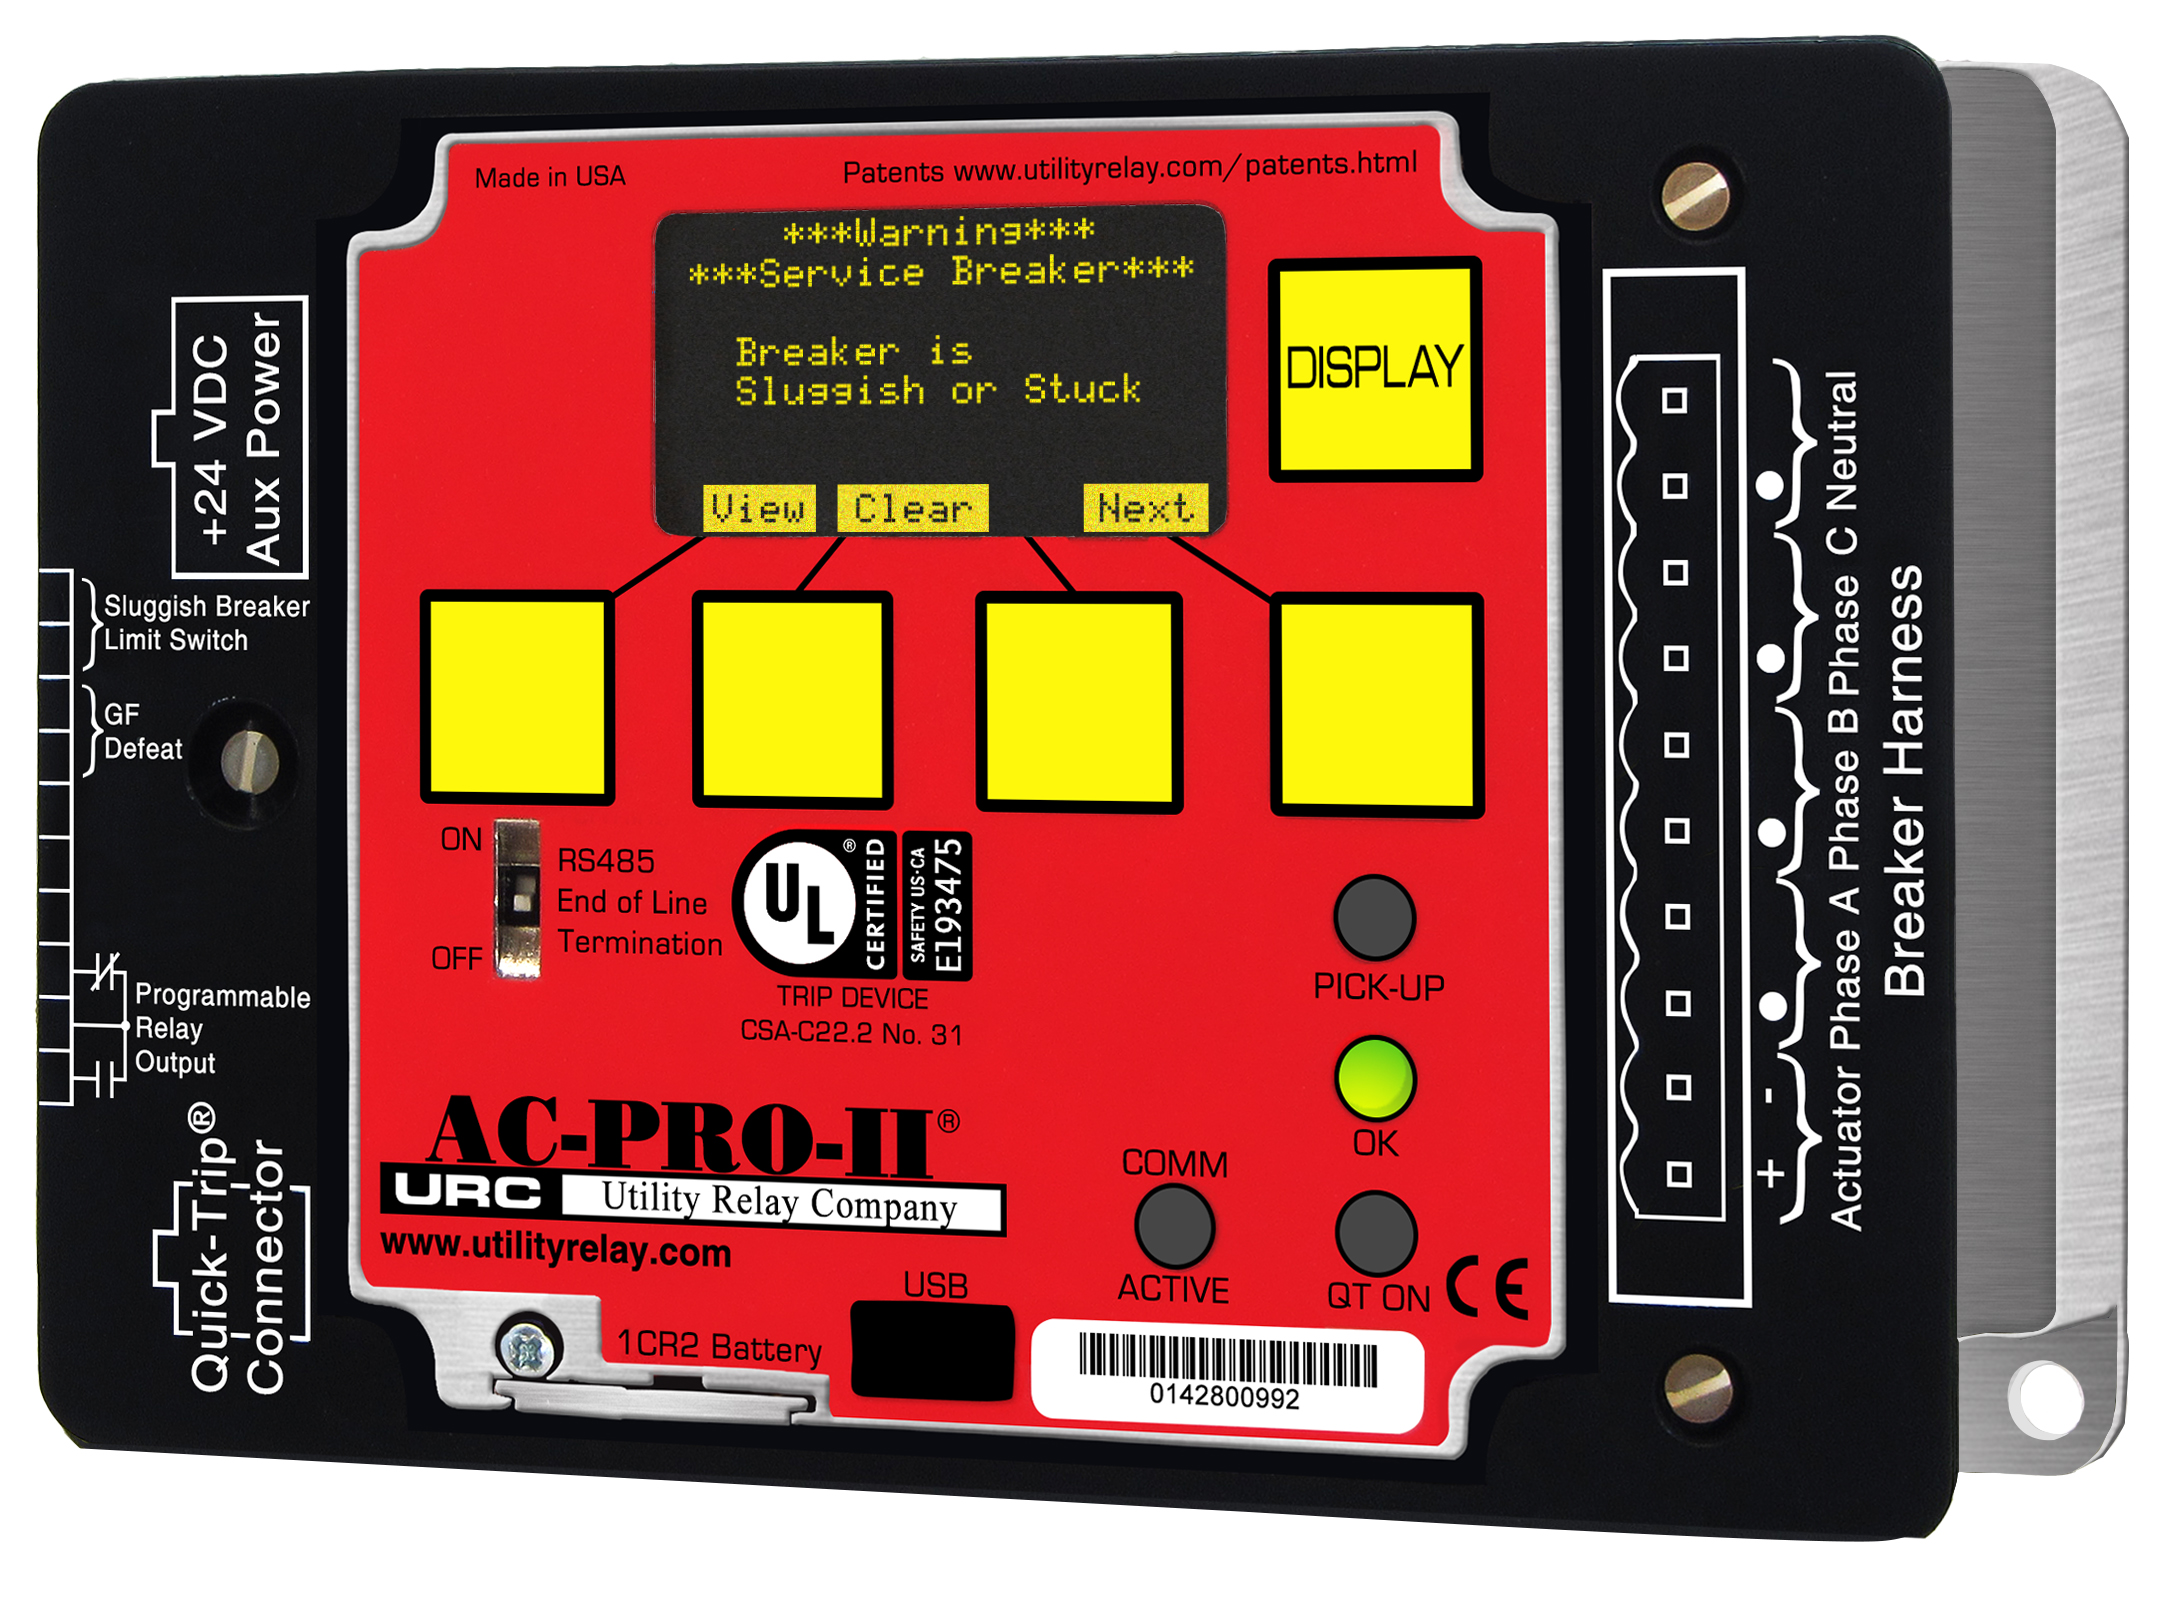 AC-PRO-II at Utility Relay Company